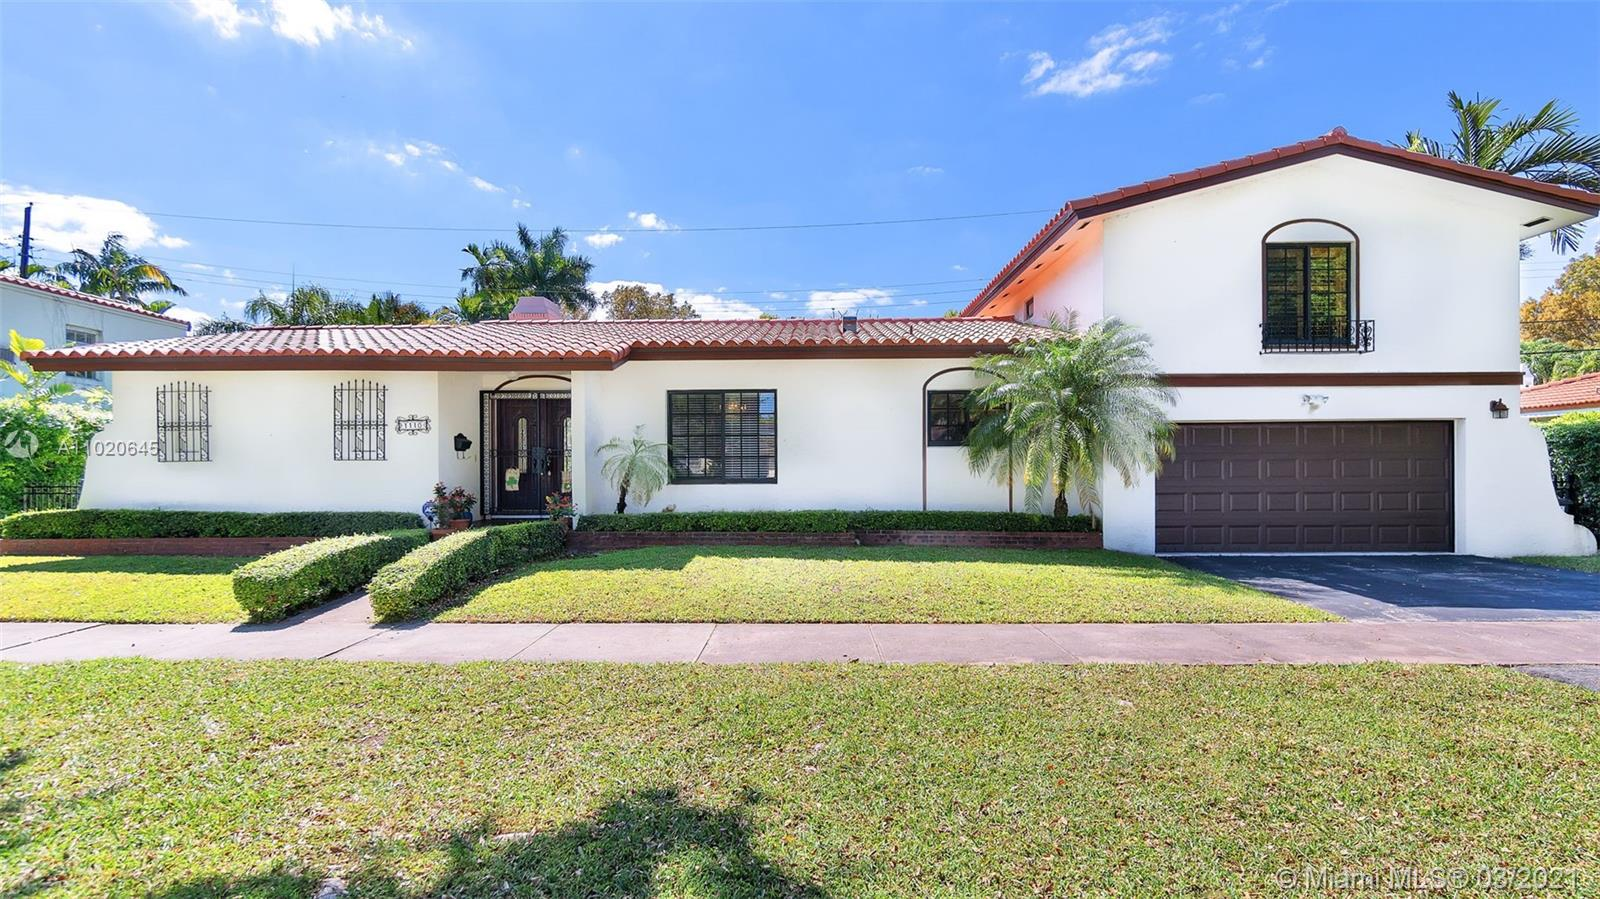 """NEW ROOF & HURRICANE IMPACT WINDOWS. A must see beautiful home on the prestigious and sought after Granada Boulevard. Classically remodeled, Mediterranean style 3/2.5 in the heart of """"the city beautiful"""" Coral Gables. Boasting over 2,500 SF of living area, this classic Coral Gables home offers a beautiful & bright Florida room, large family room, large classic living room w/ wood beam ceiling and fireplace to match, as well as large remodeled kitchen and formal dining room. Downstairs master suite with bay window, separate from the other two large bedrooms. Large 2 car garage. Professionally installed turf patio. Impact windows and doors throughout the house. New Spanish tile roof, new washer/dryer, new water heater. Walking distance to Granada Golf course and Coral Gables Country Club."""